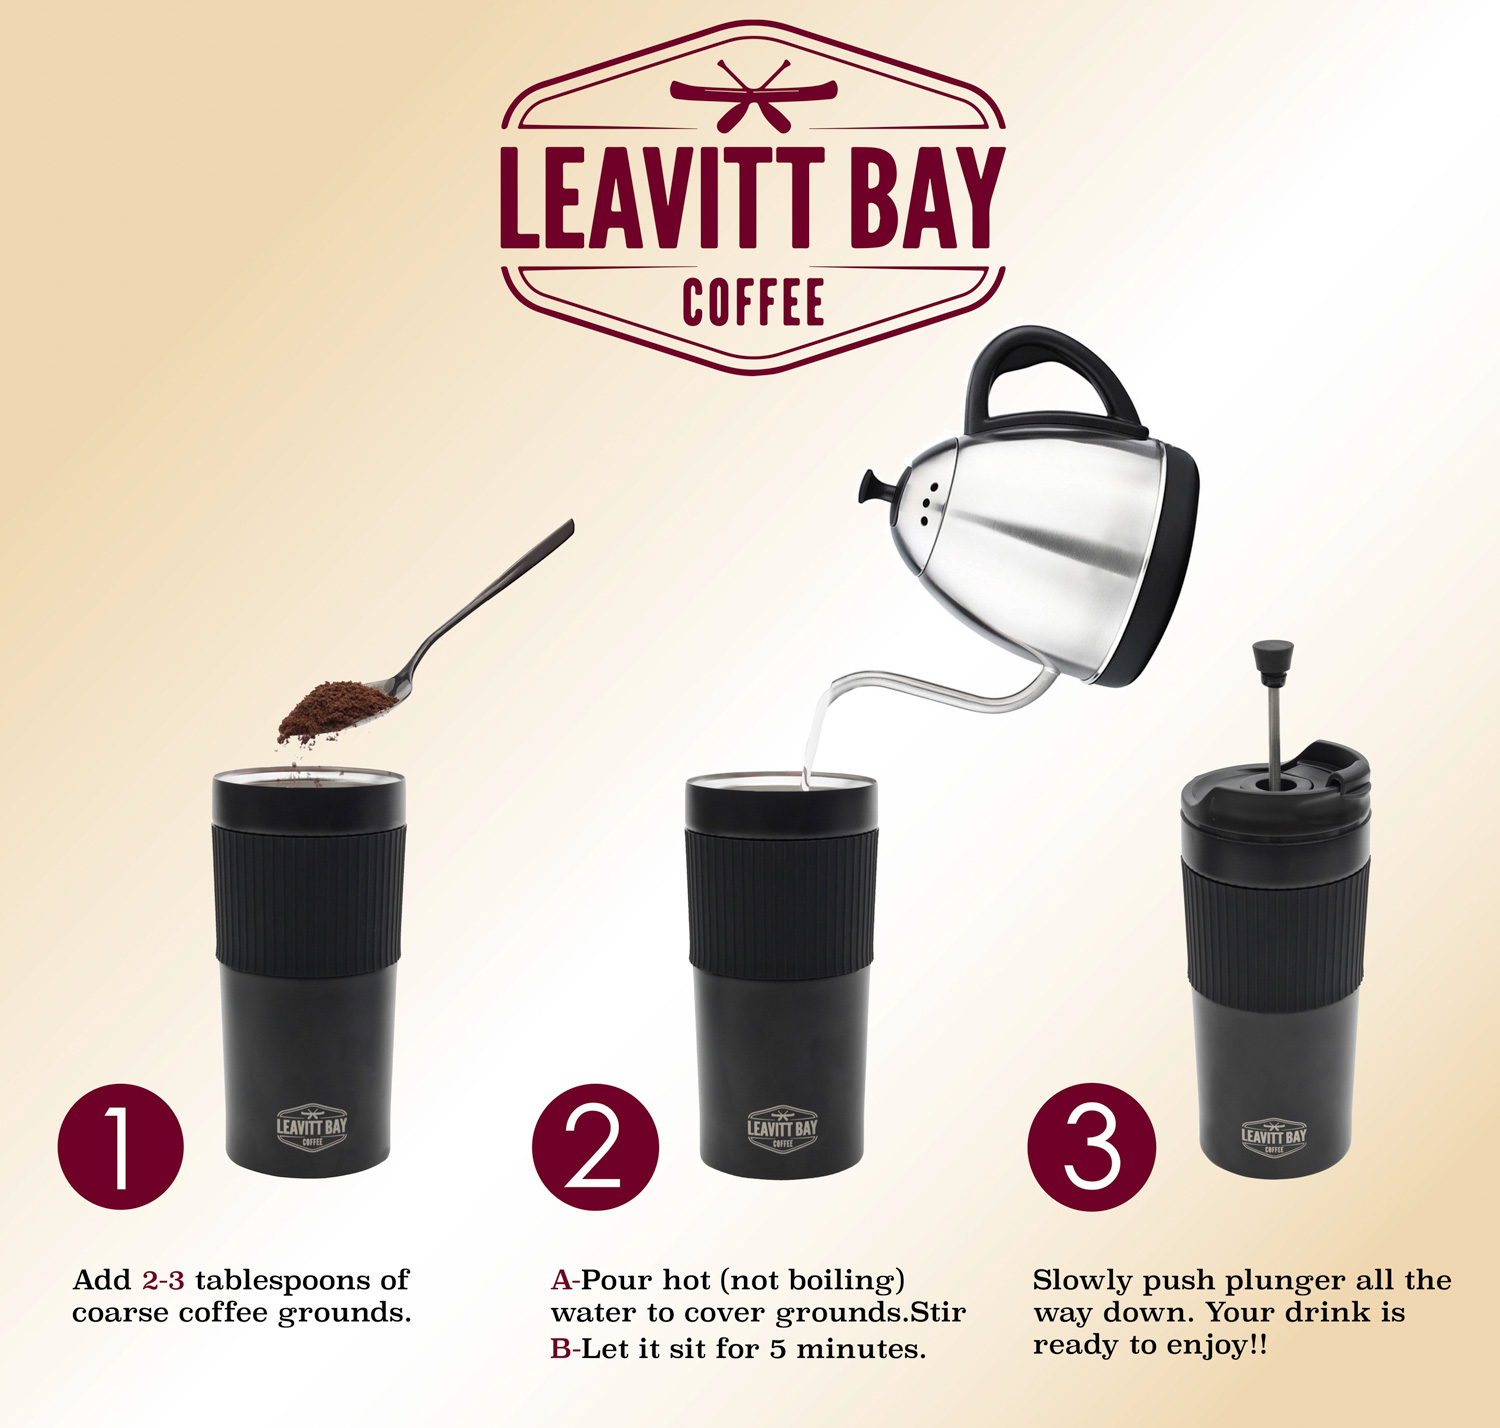 Leavitt Bay Coffee